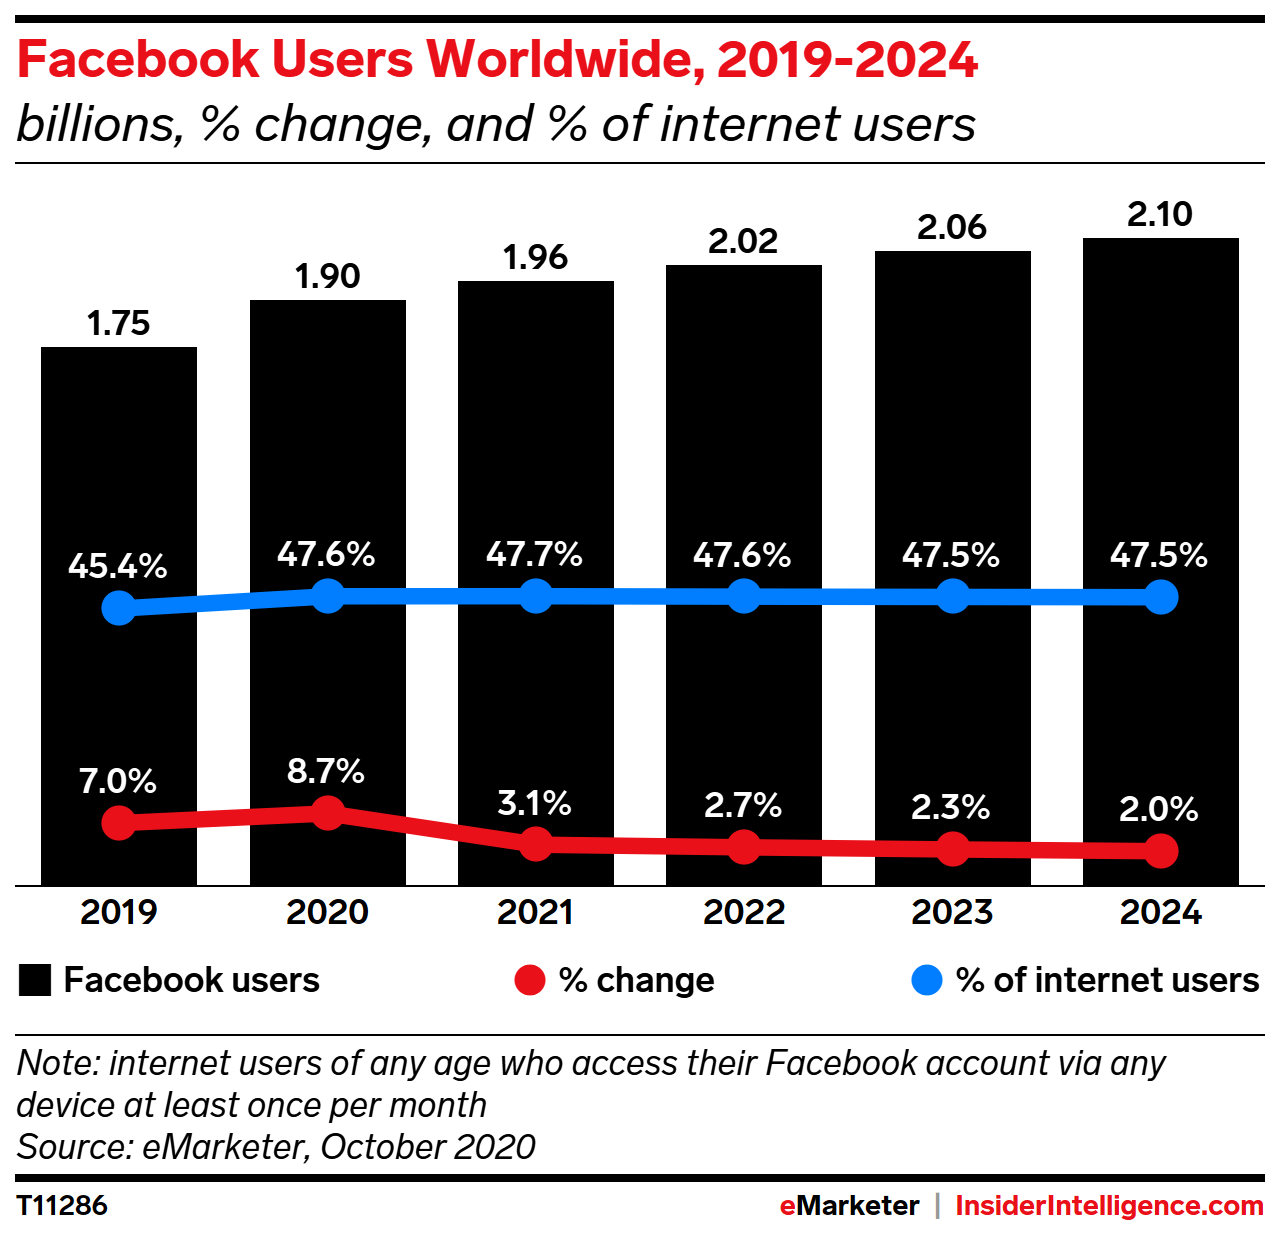 Facebook Users Worldwide, 2019-2024 (billions, % change, and % of internet users)